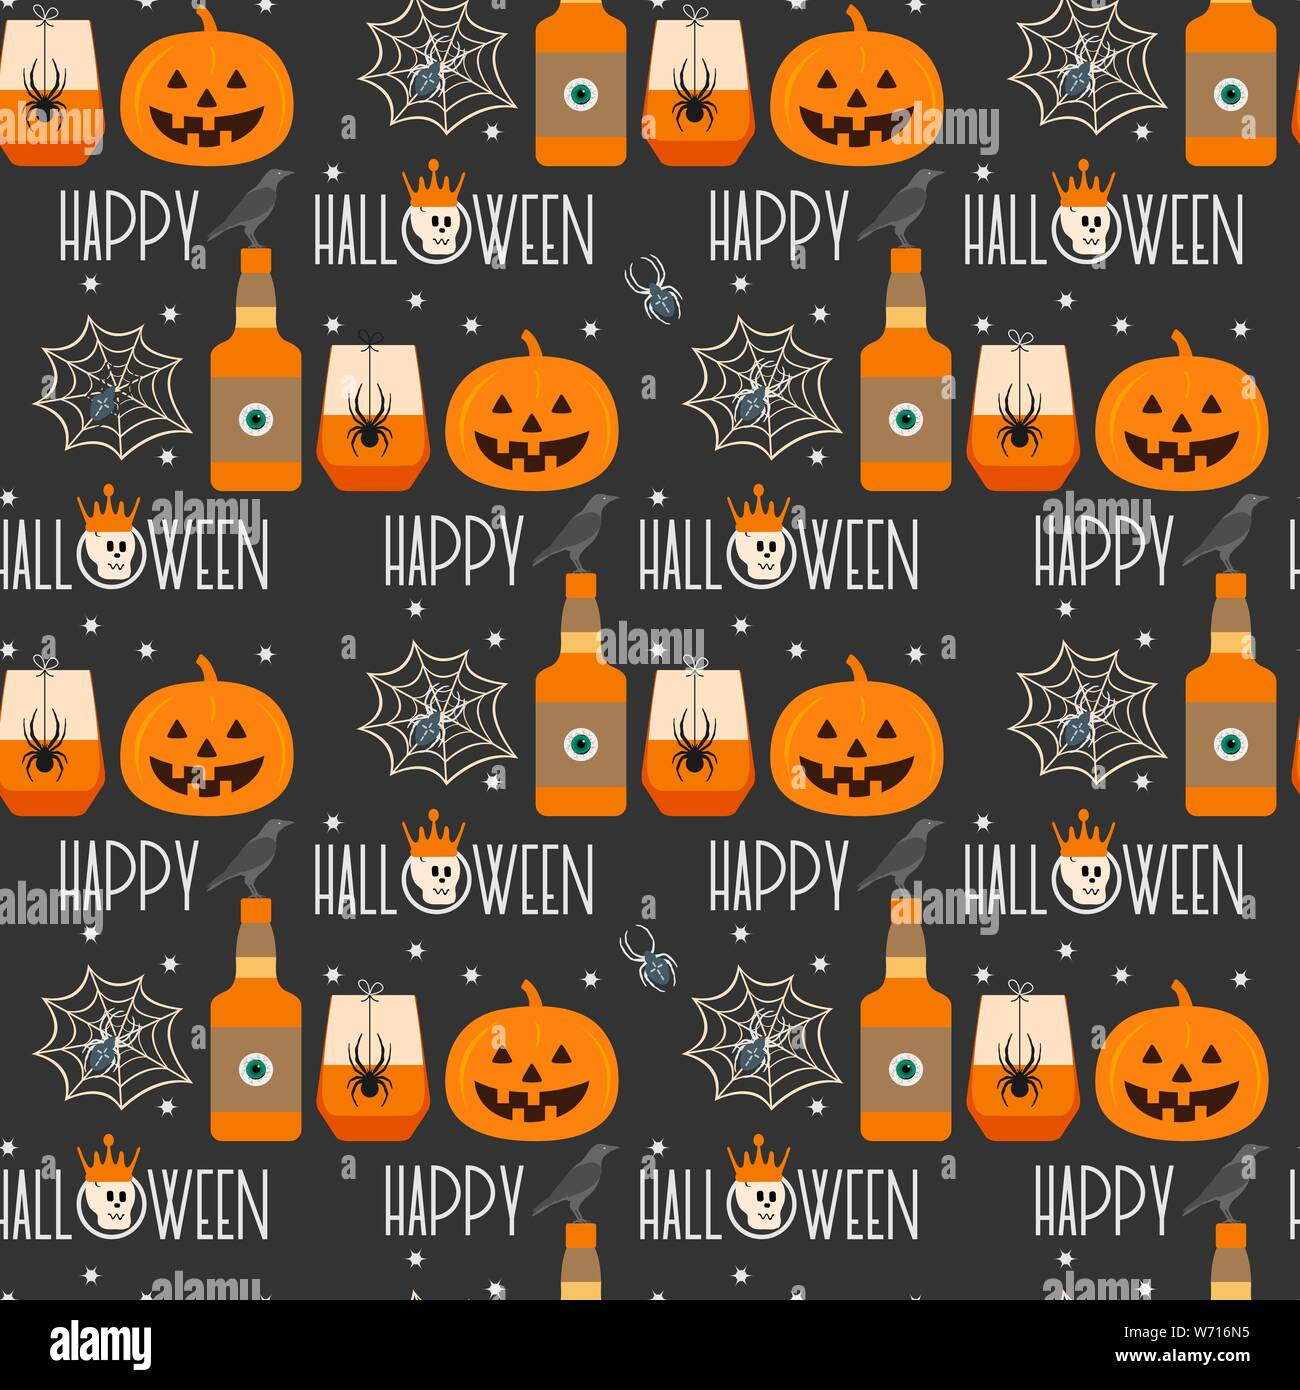 The Halloween Party 2020 Halloween party 2020. Vector seamless pattern with inscription